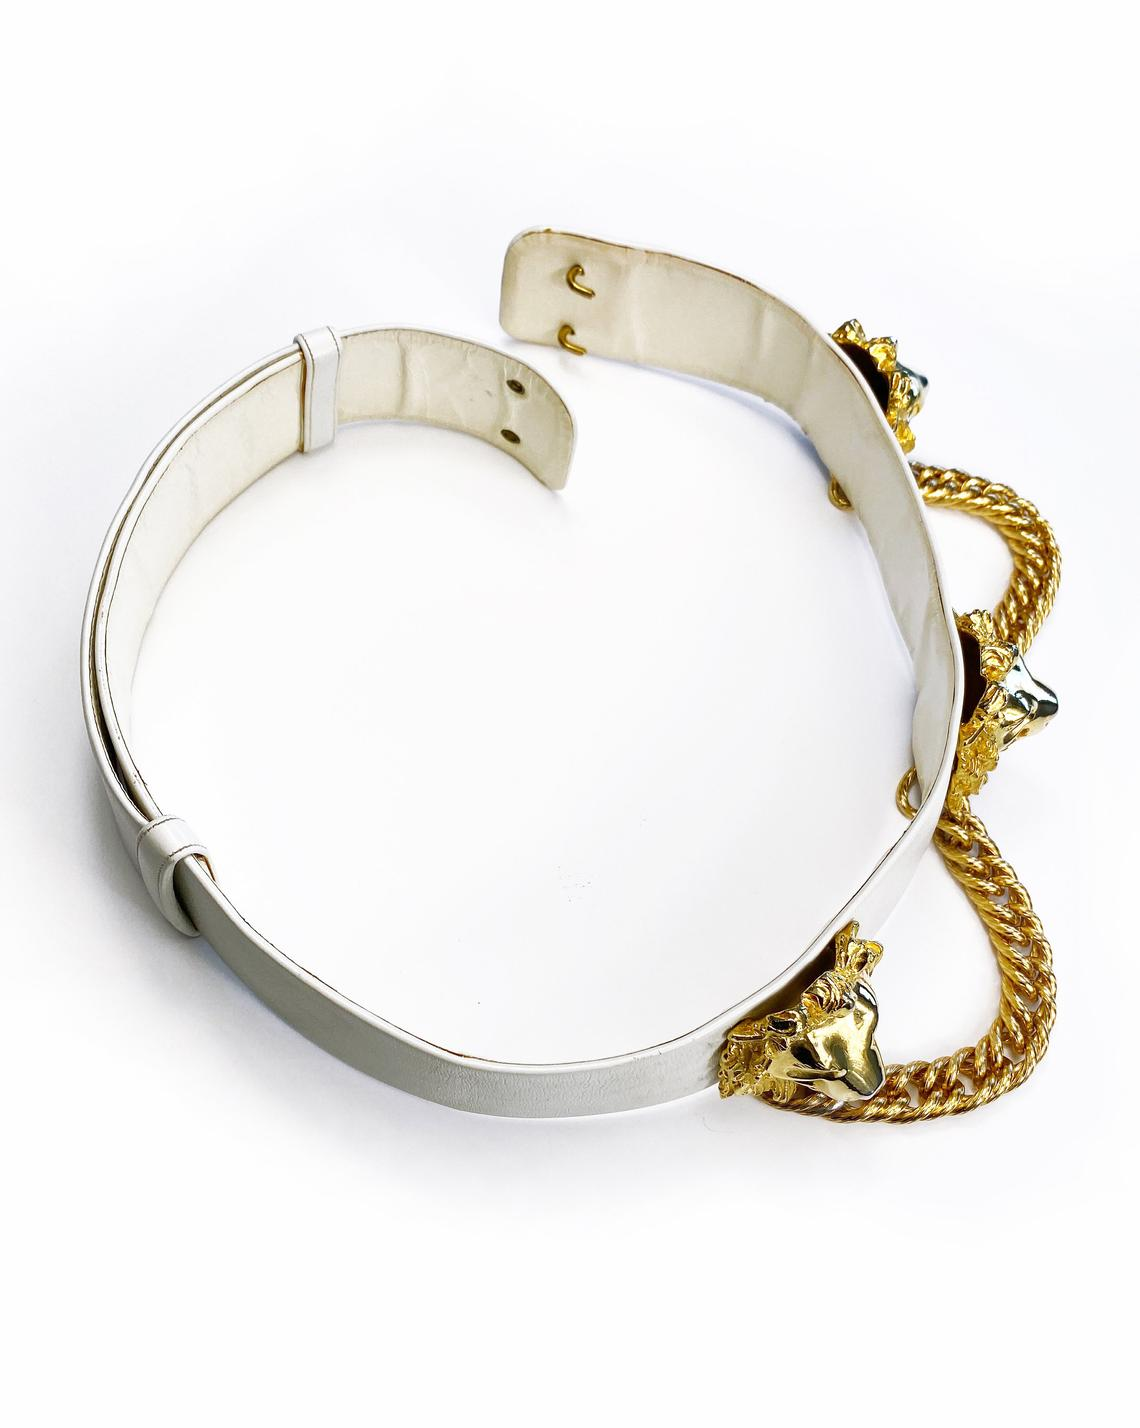 Fruit Vintage iconic Judith Leiber lions head belt with drop chains. This piece is amazing! It features 3 very large gold tone metal lions heads with drop chains on a white leather belt.